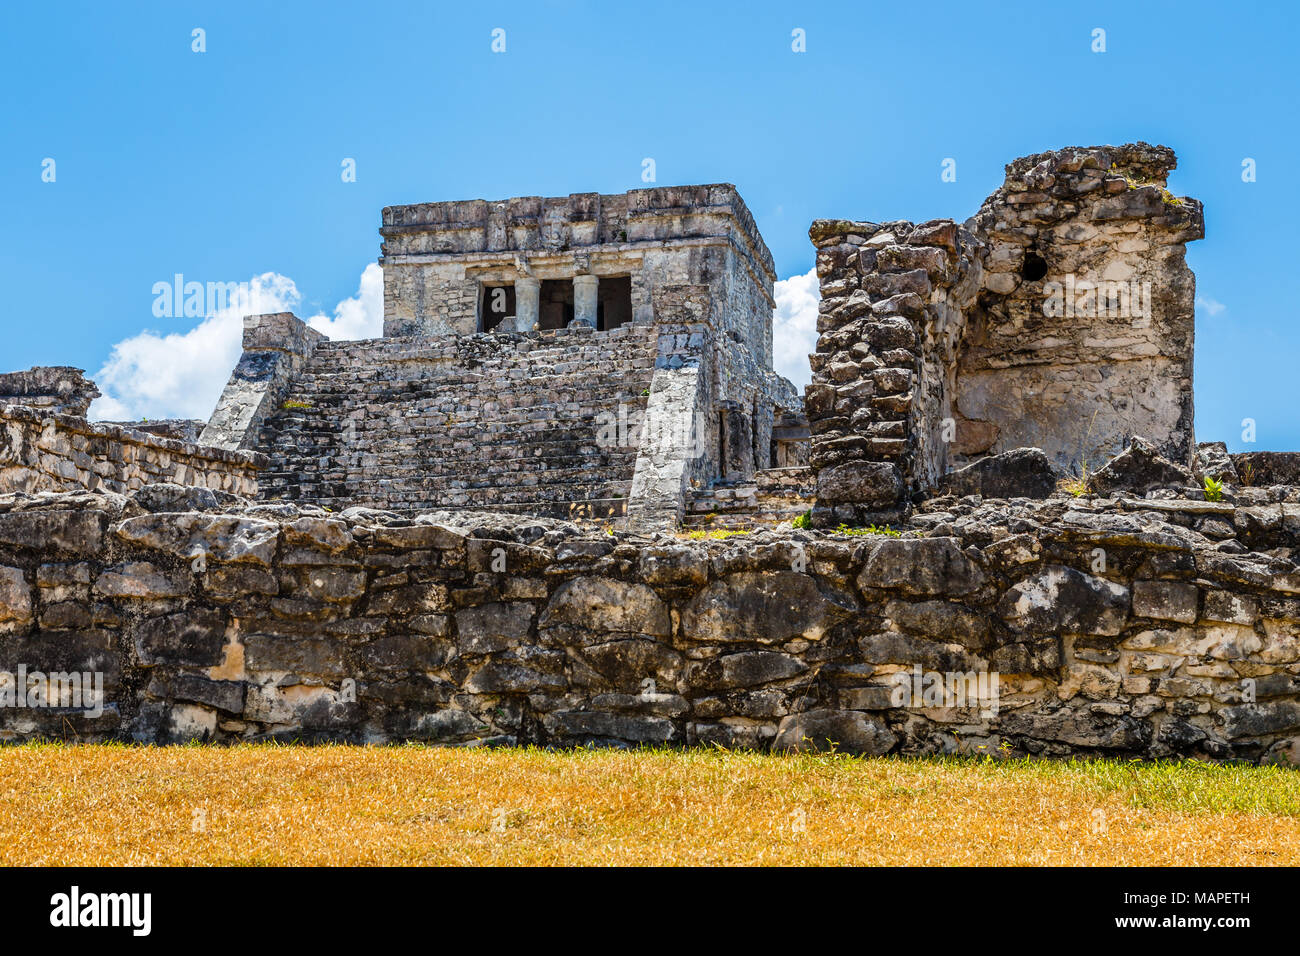 Old ruined ancient Mayan temple with blue sky, Tulum ... on map mexico tulum quintana roo, map of yaxchilan, map of mexico, map of isla mujeres, map of tikal, map of soliman bay, map of chetumal bay, map of playa del carmen, map of cozumel, map of mérida, map of troncones, map of naranjo, map of patzcuaro, map of xilitla, map of yucatan, map of xcaret, map of cancún, map of punta allen, map of michoacán, map of chichen itza,